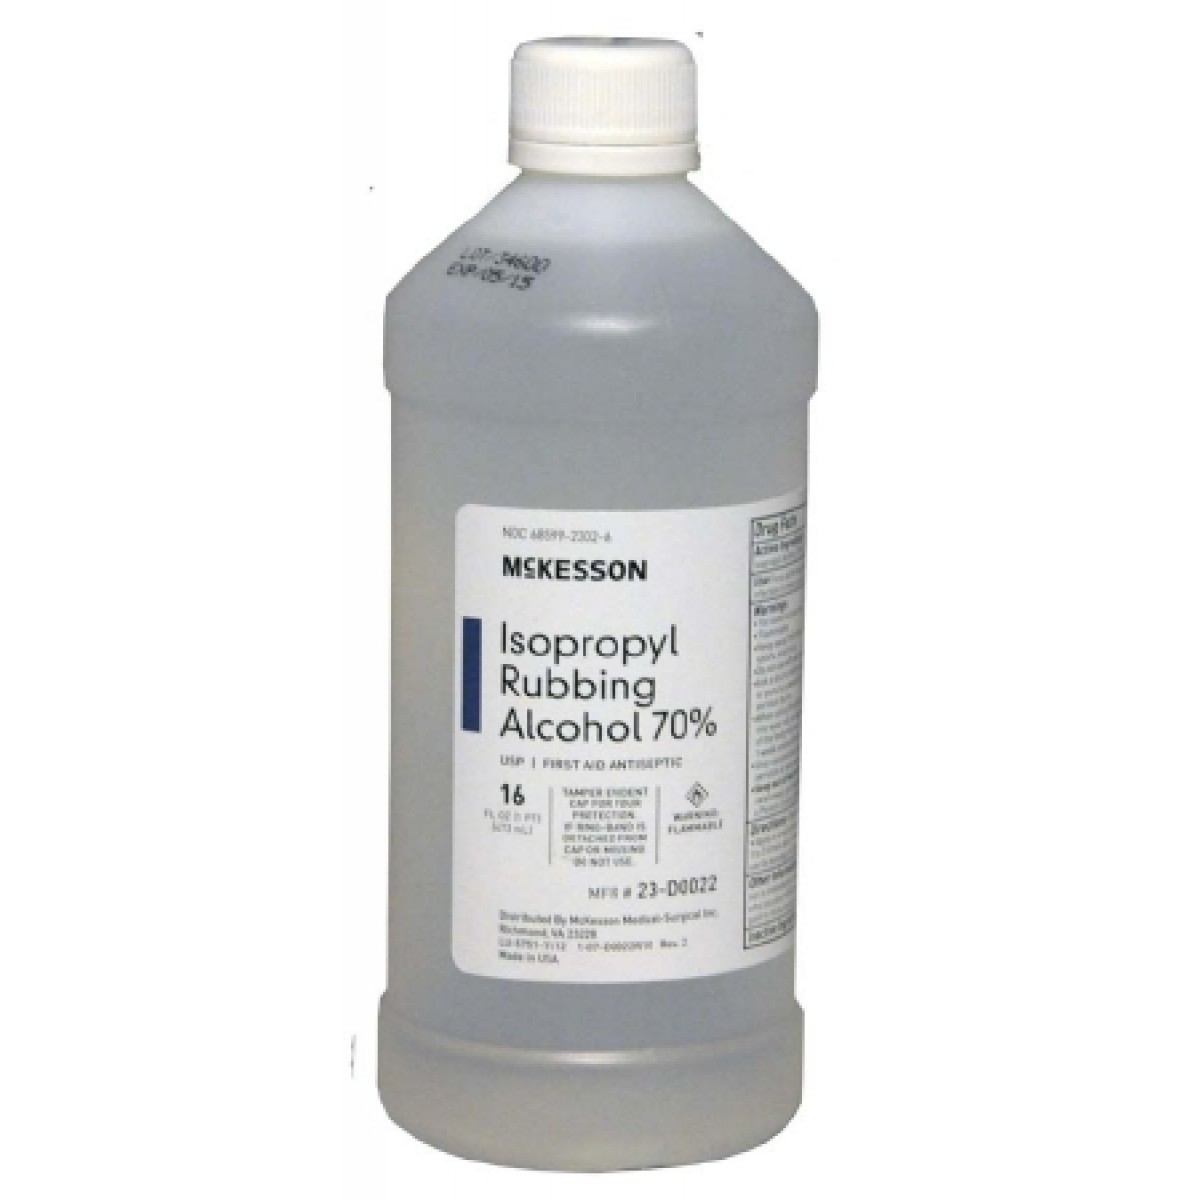 Mckesson Isopropyl Rubbing Alcohol 23 D0022